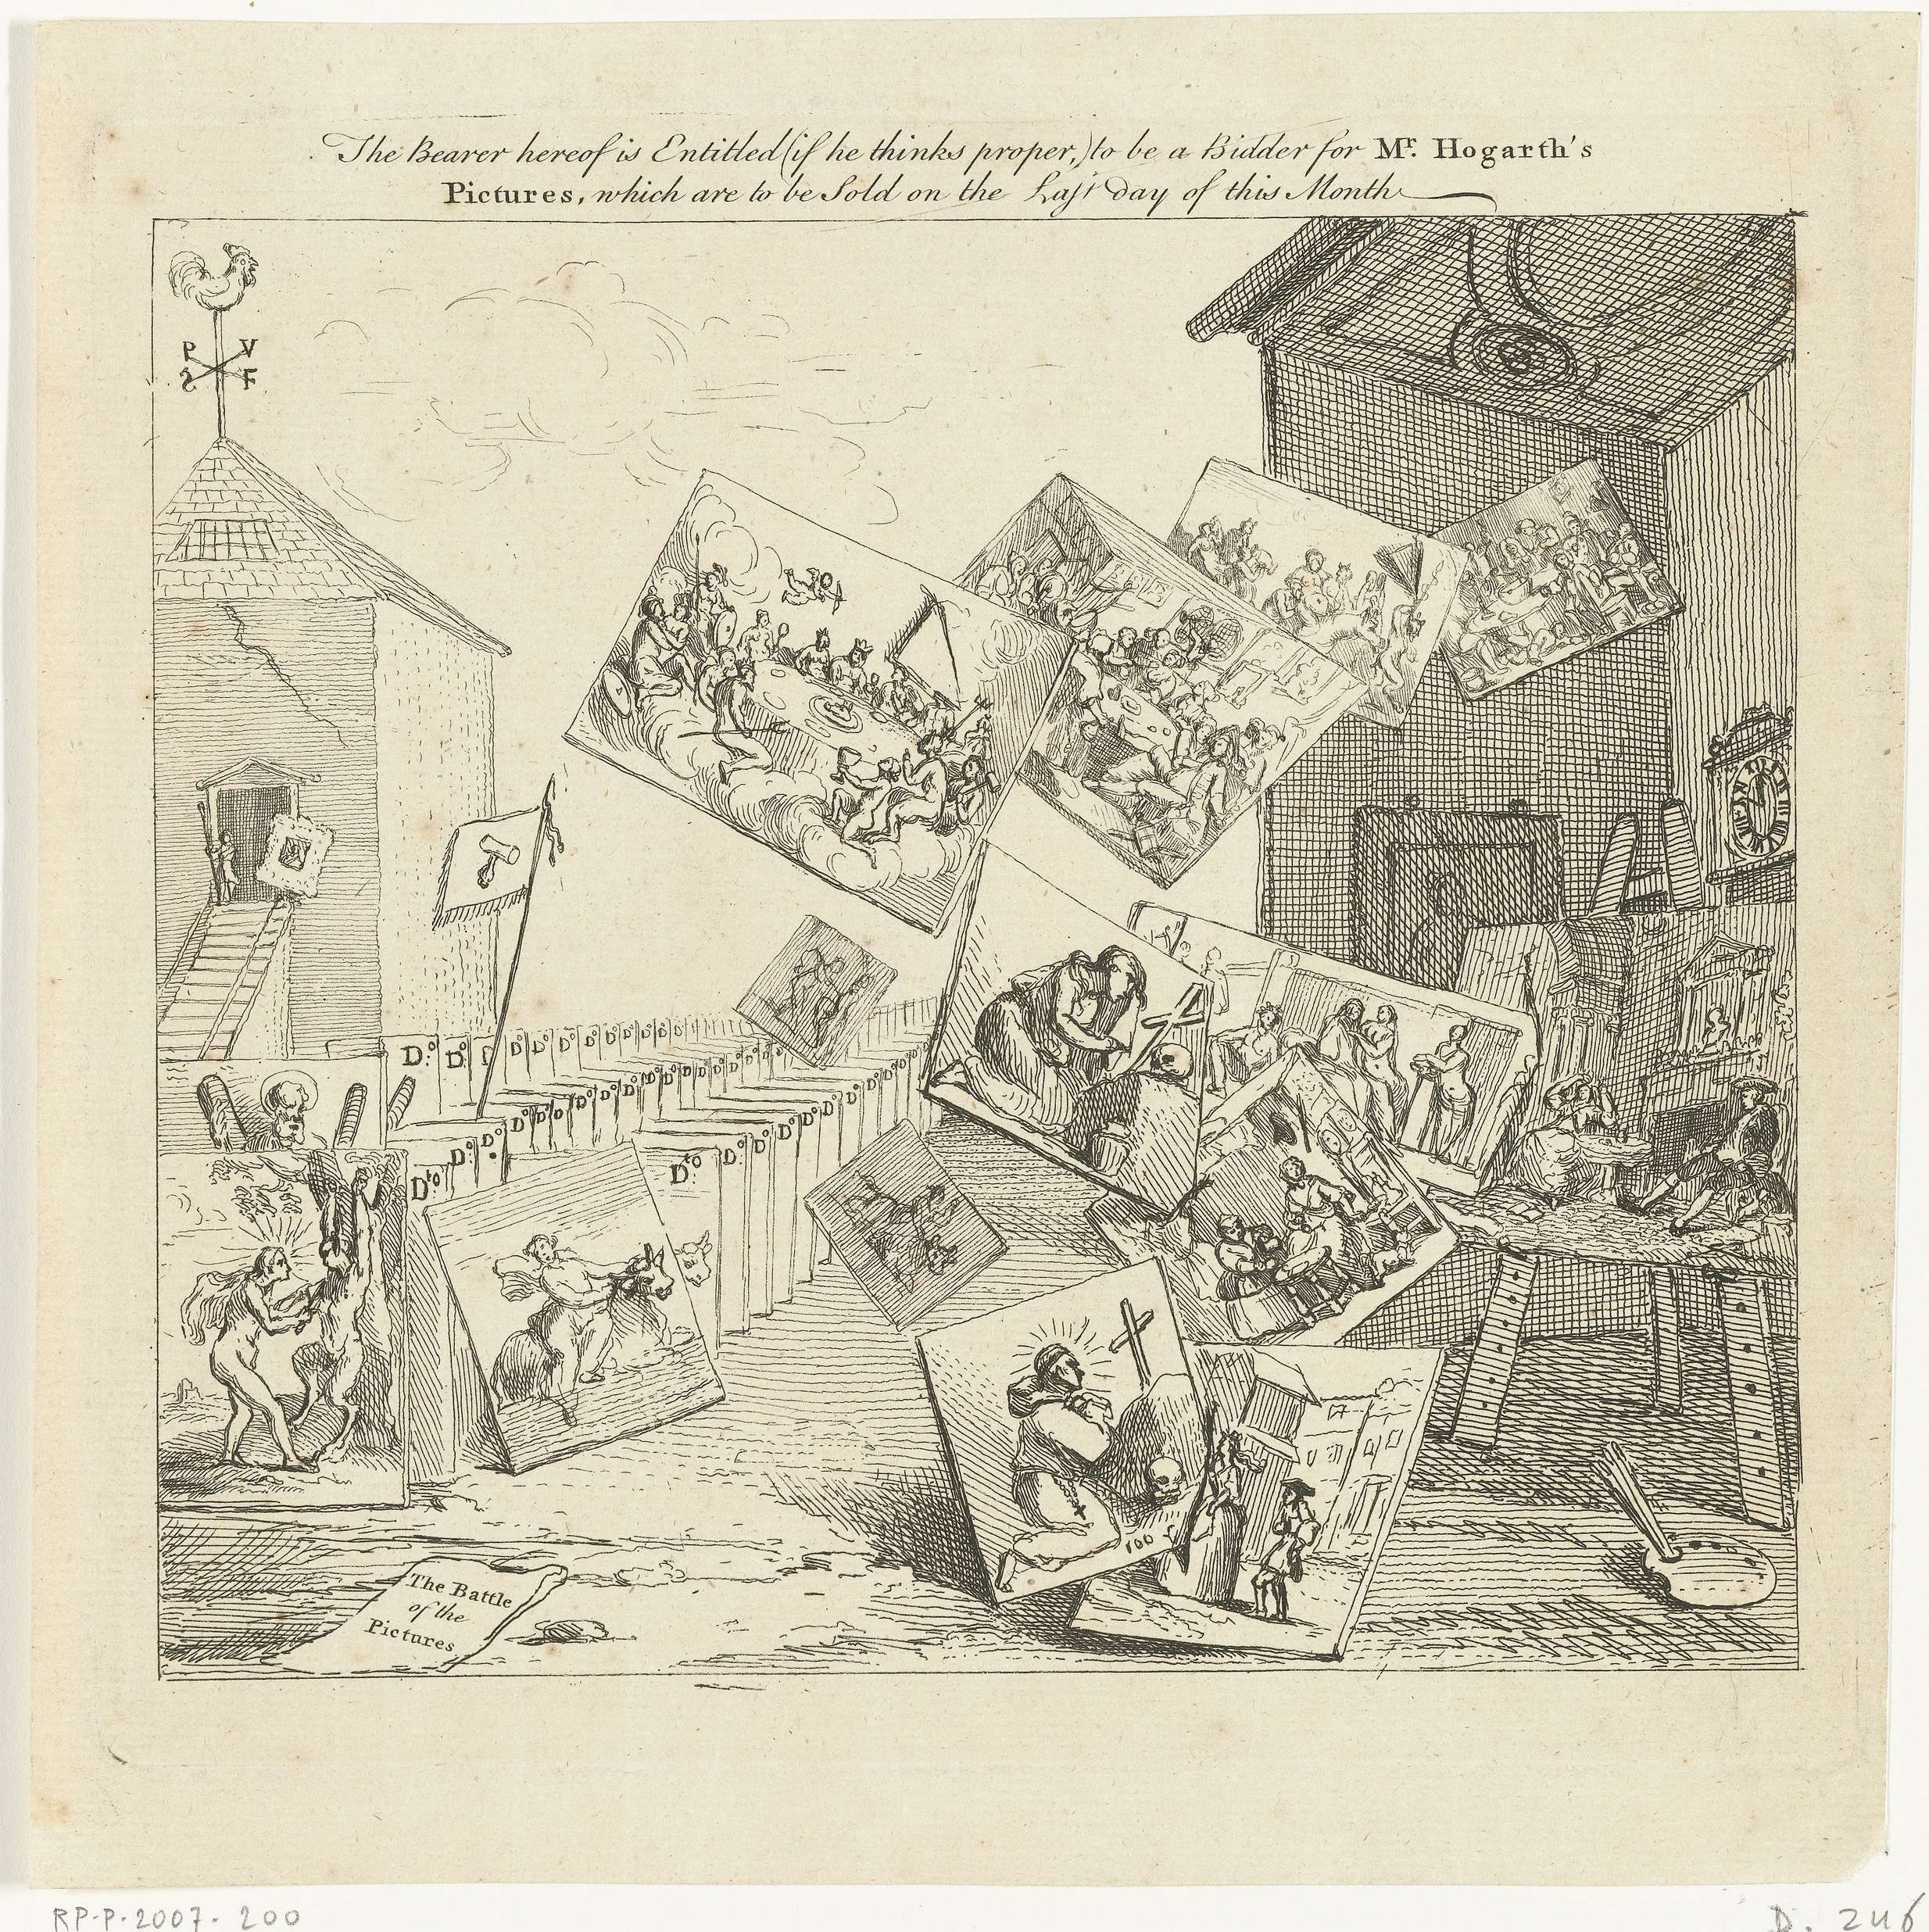 The battle of the pictures, William Hogarth, 1744